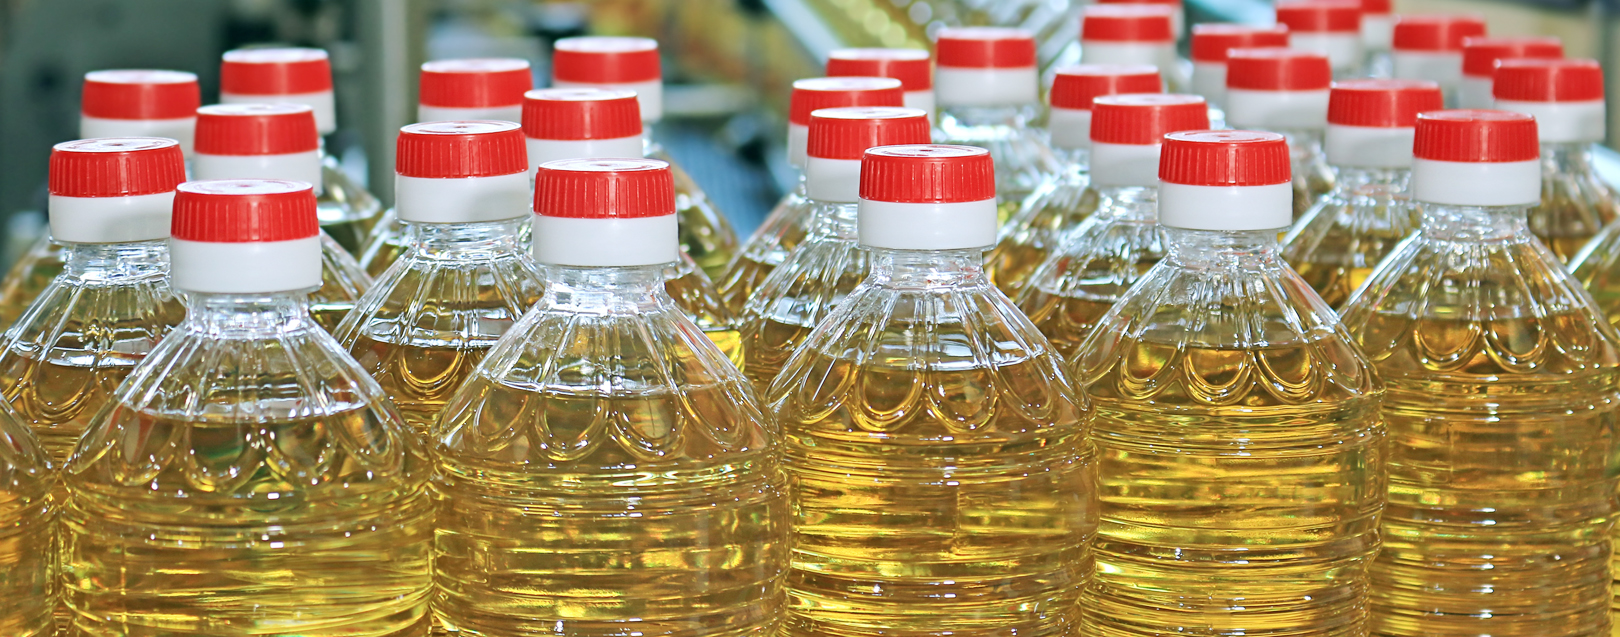 Govt raises import duty on edible oils to boost local prices